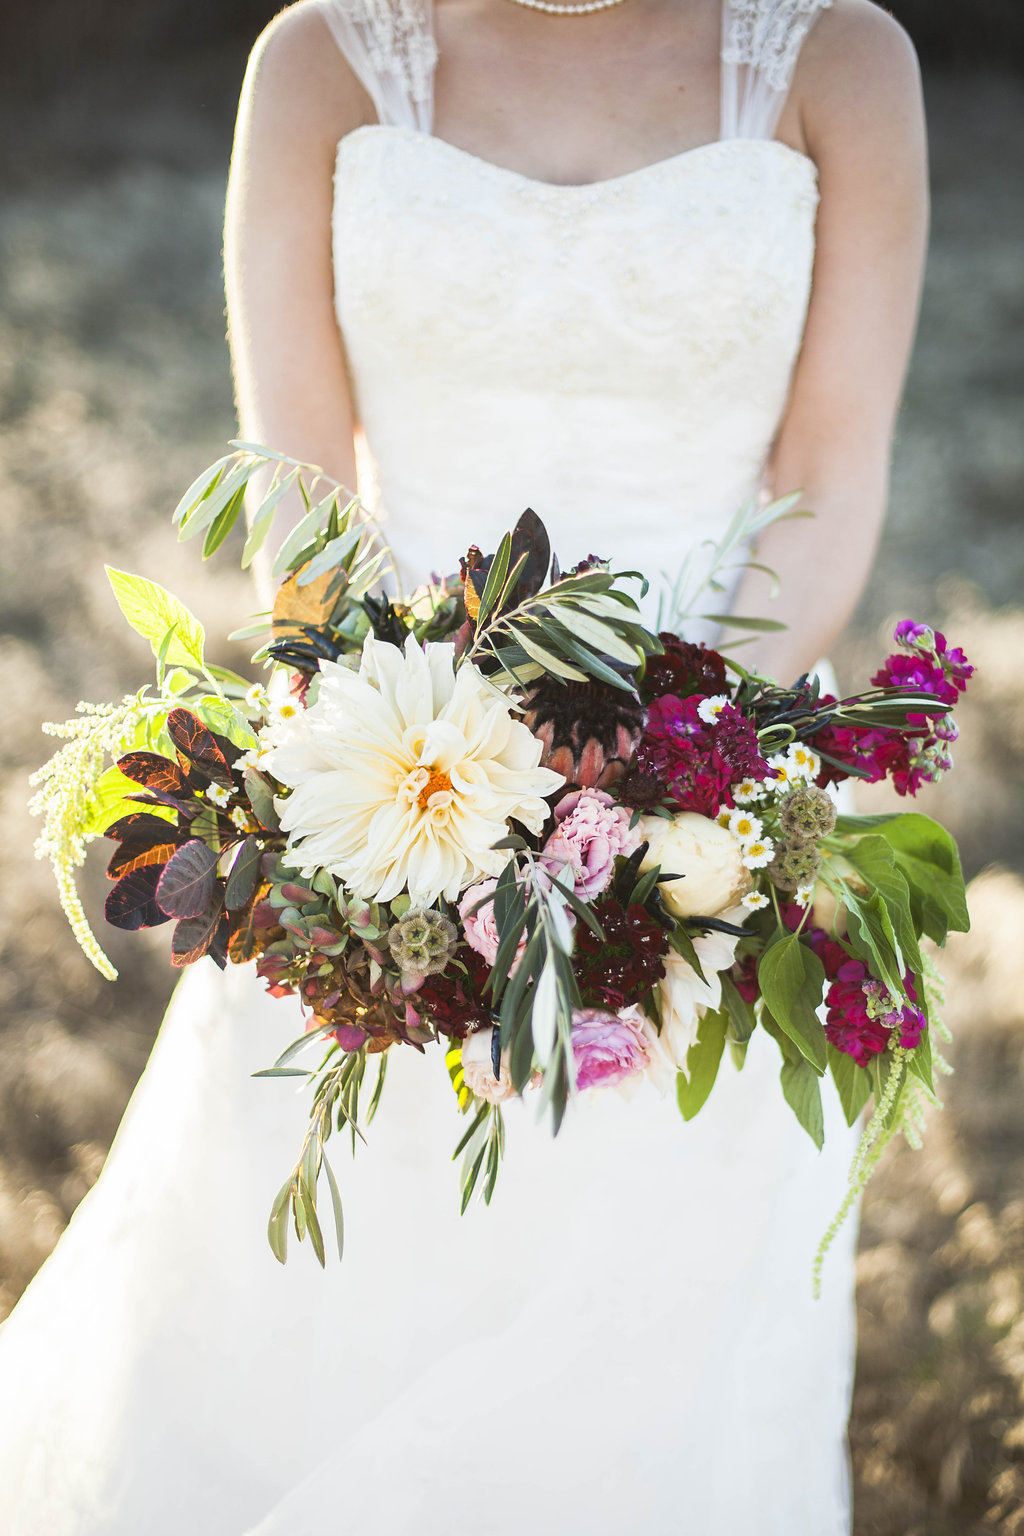 Cost Of Wedding Flowers 2017 : The brides romantic unstructured bouquet was composed of